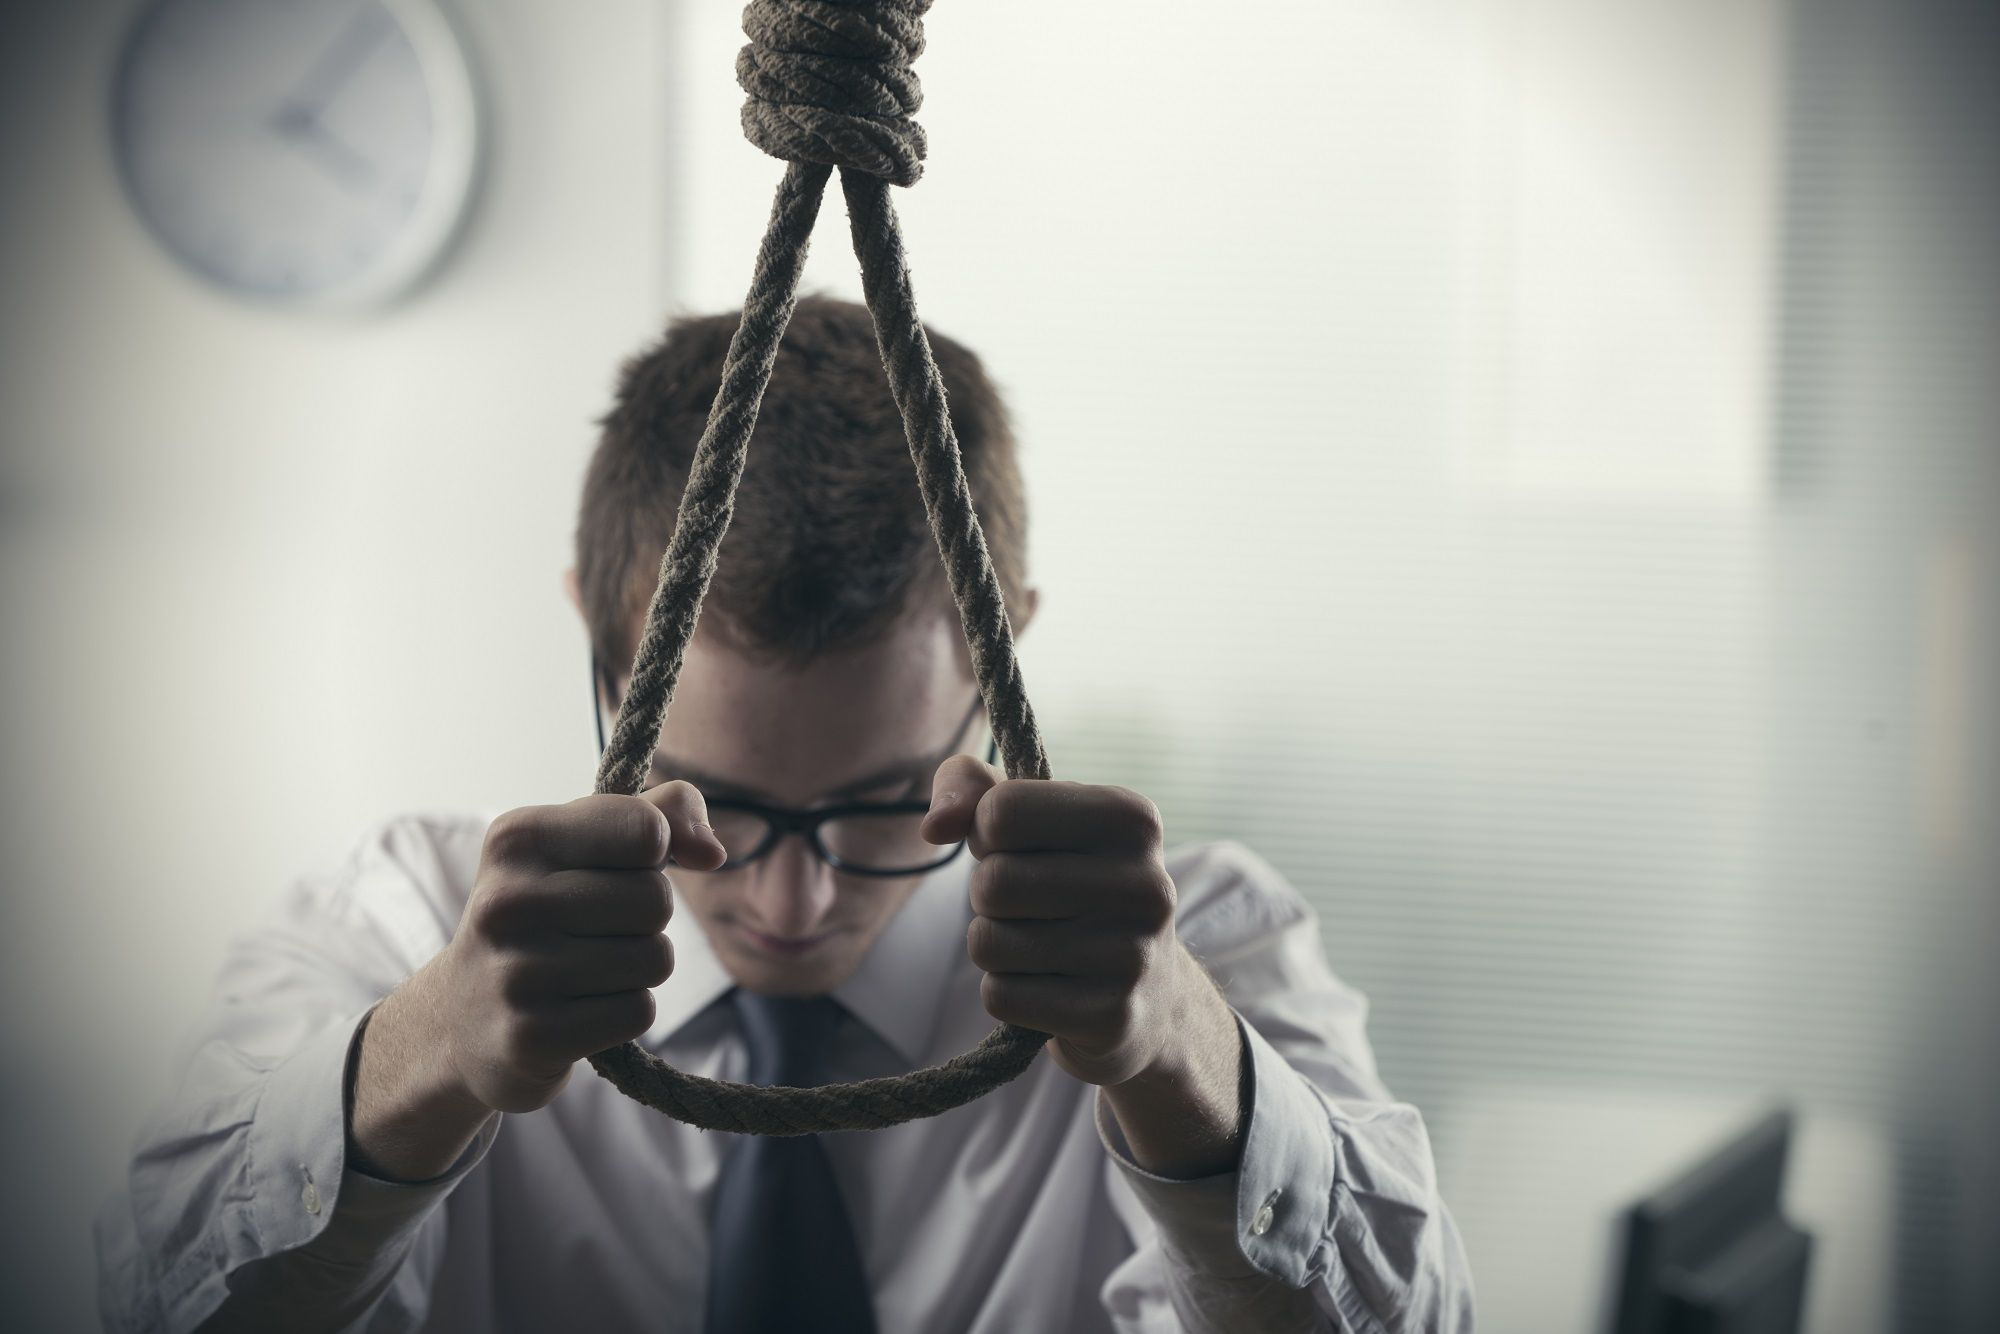 15 Professions With The Highest Suicide Rates